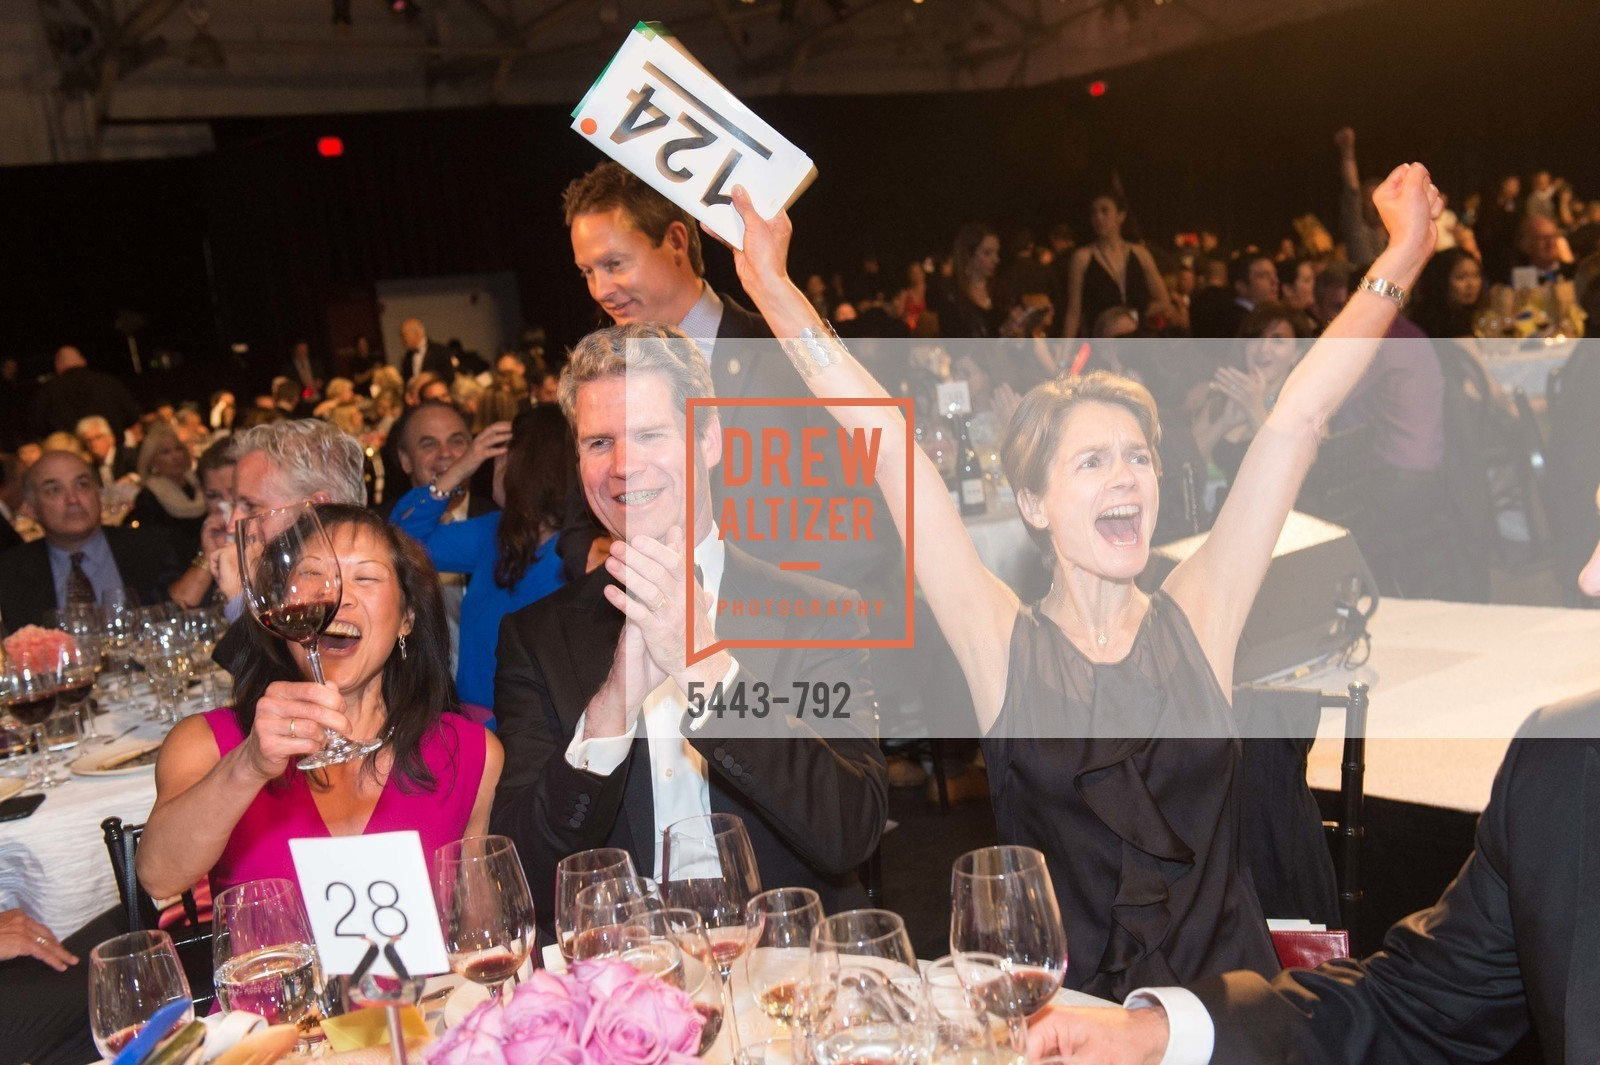 Debbie Jorgensen, Blake Jorgensen, Laura Fanlo, MEALS ON WHEELS OF SAN FRANCISCO'S 28th Annual Star Chefs and Vintners Gala, US, April 19th, 2015,Drew Altizer, Drew Altizer Photography, full-service agency, private events, San Francisco photographer, photographer california